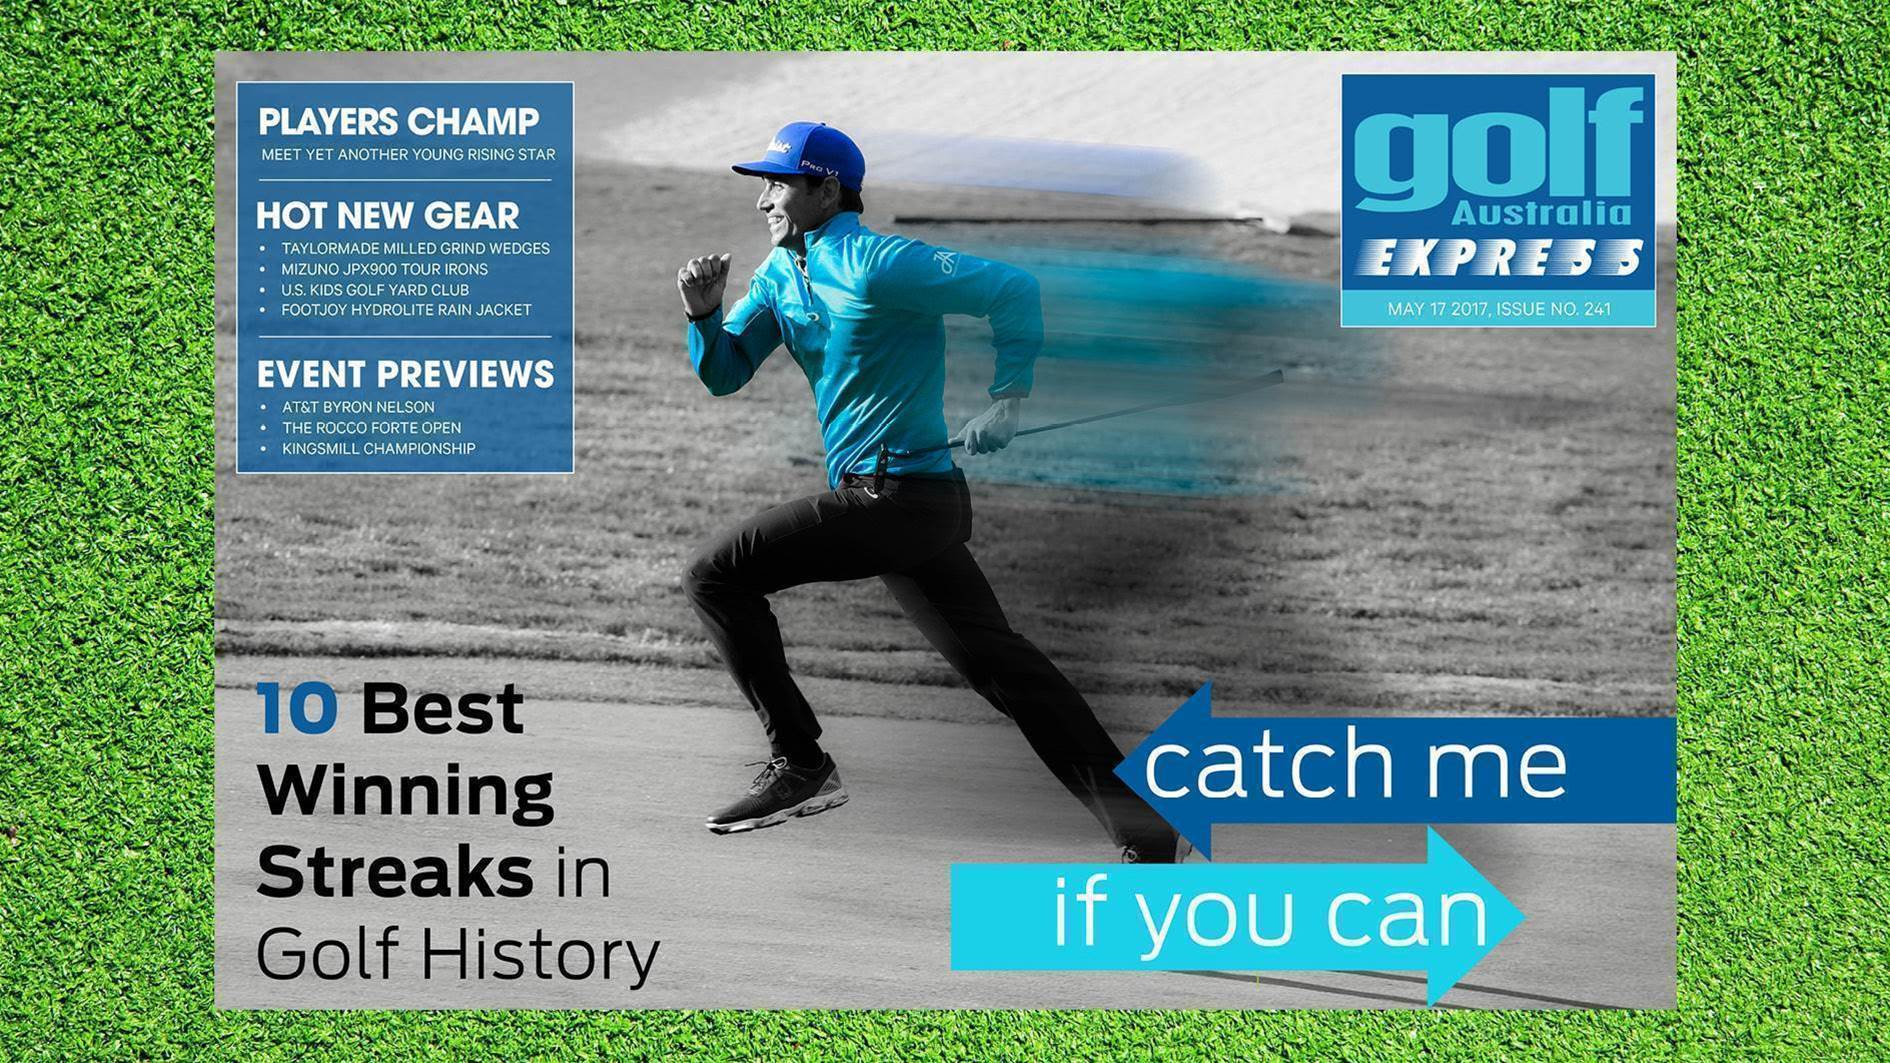 GA Express #241: Golf's greatest winning streaks